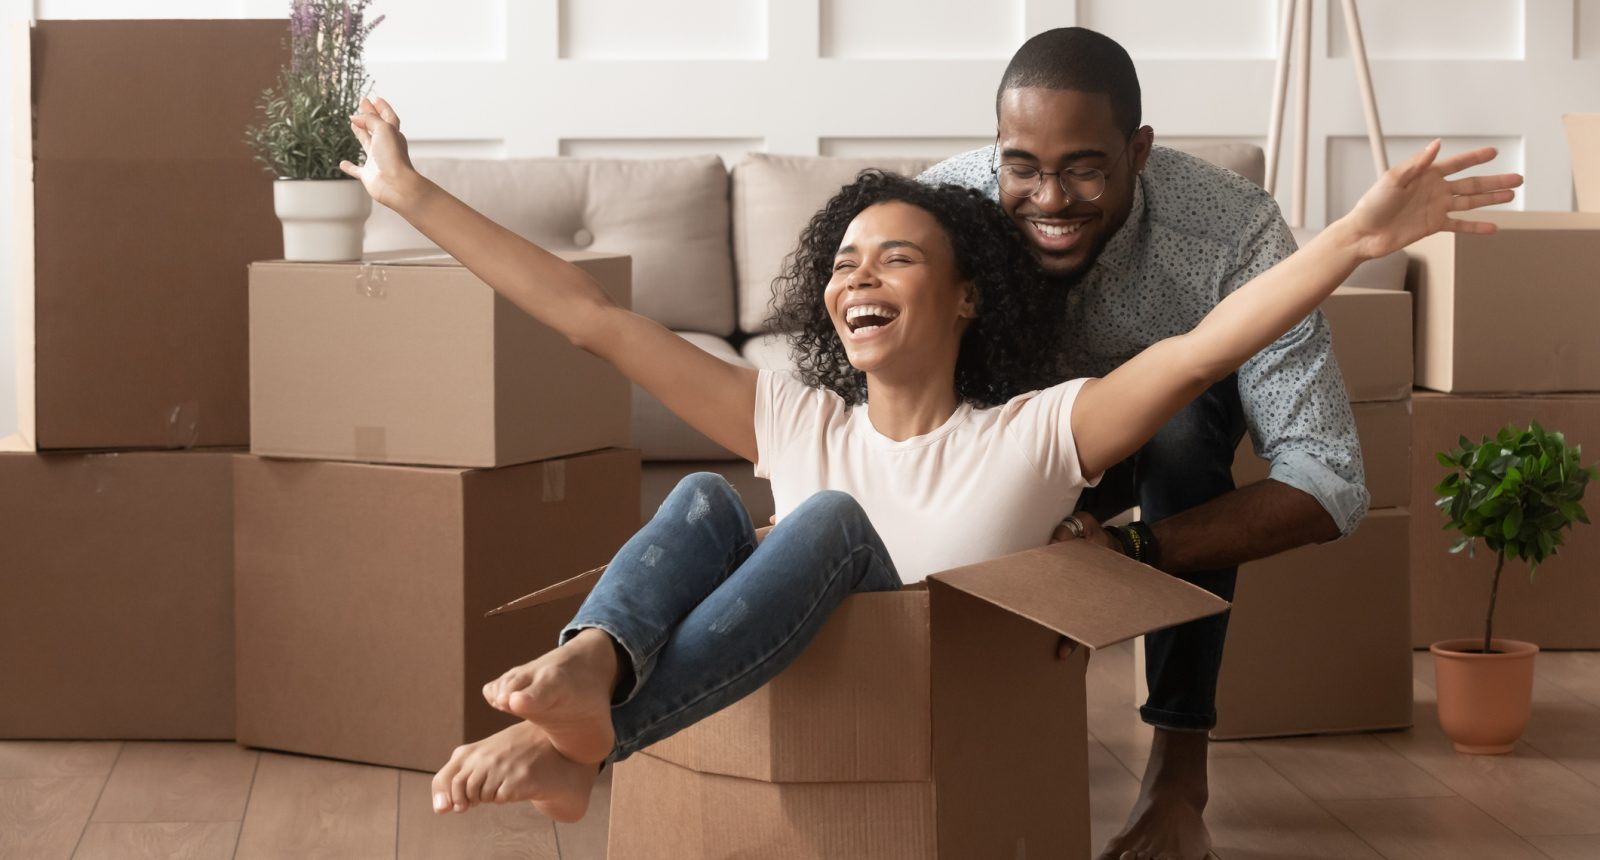 Man pushing woman in a box while moving in